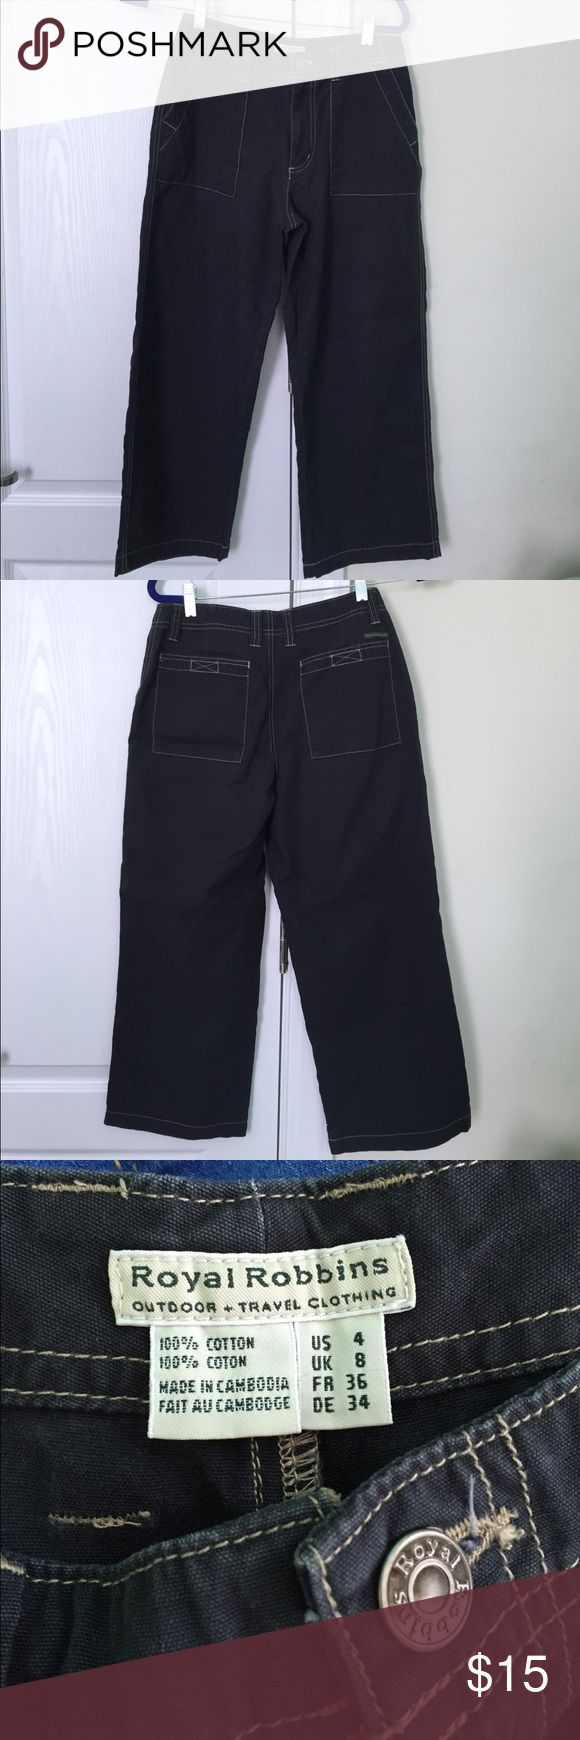 Royal Robbins Outdoor Pants Size 4. Velcro-close pockets on the back Royal Robbins Pants Capris